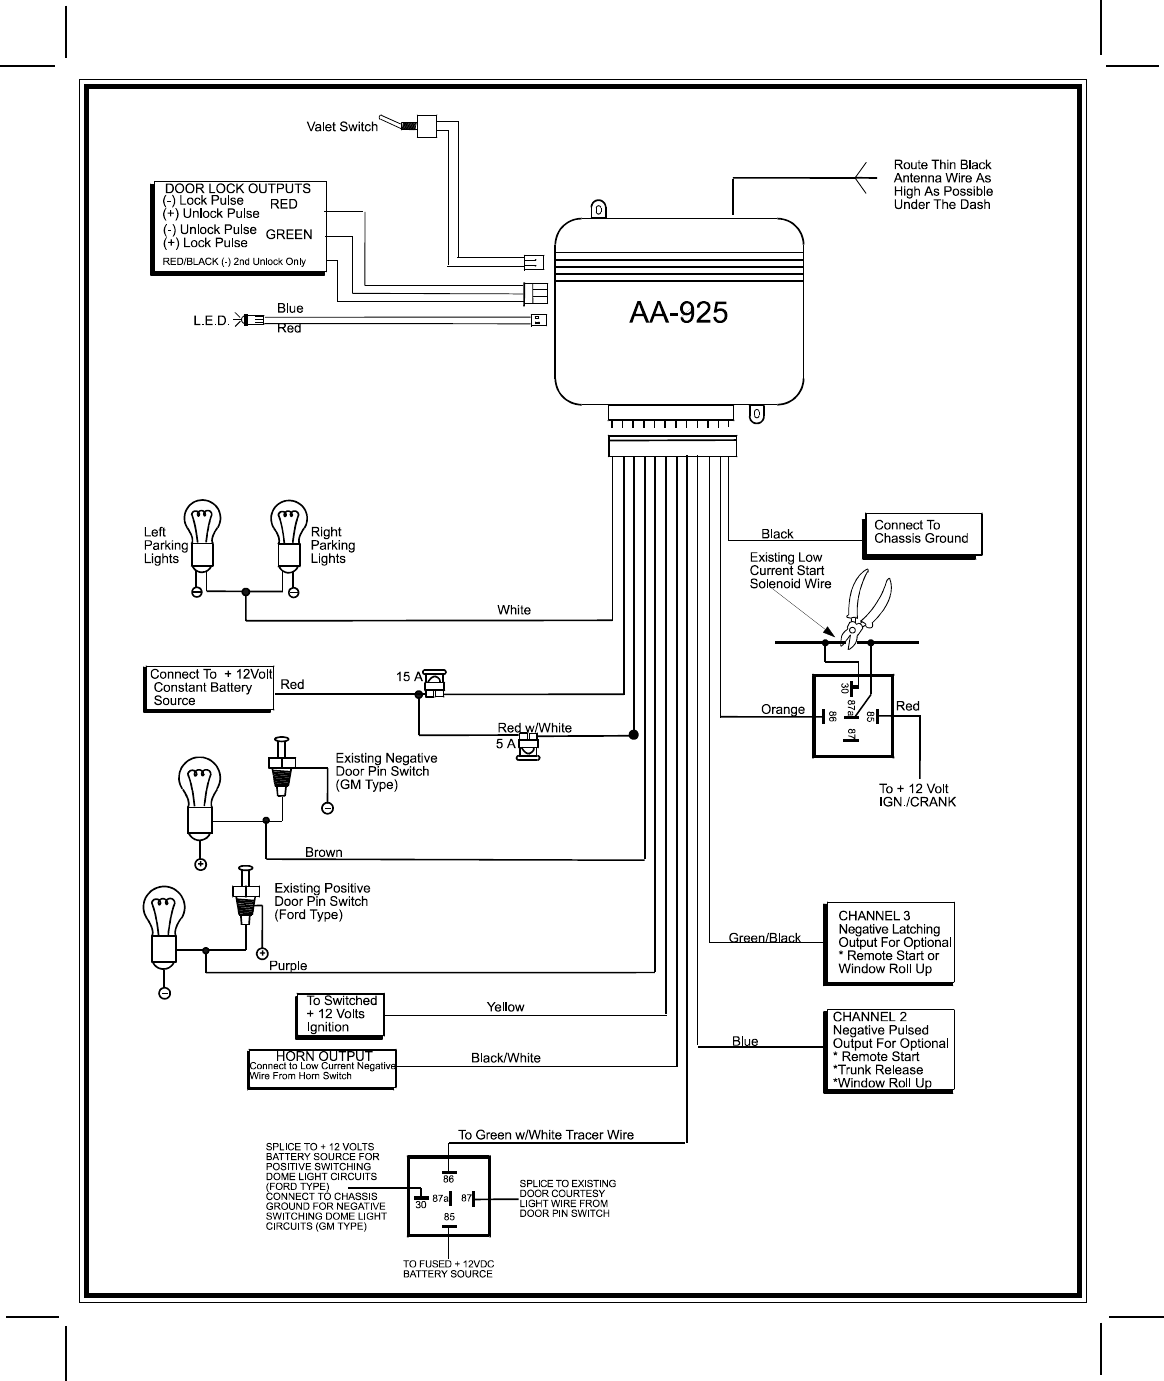 728e5939 5a52 46a4 ba14 2e72baef2843 bg8 uniden car alarm wiring diagram uniden wiring diagrams collection sparkrite car alarm wiring diagram at edmiracle.co